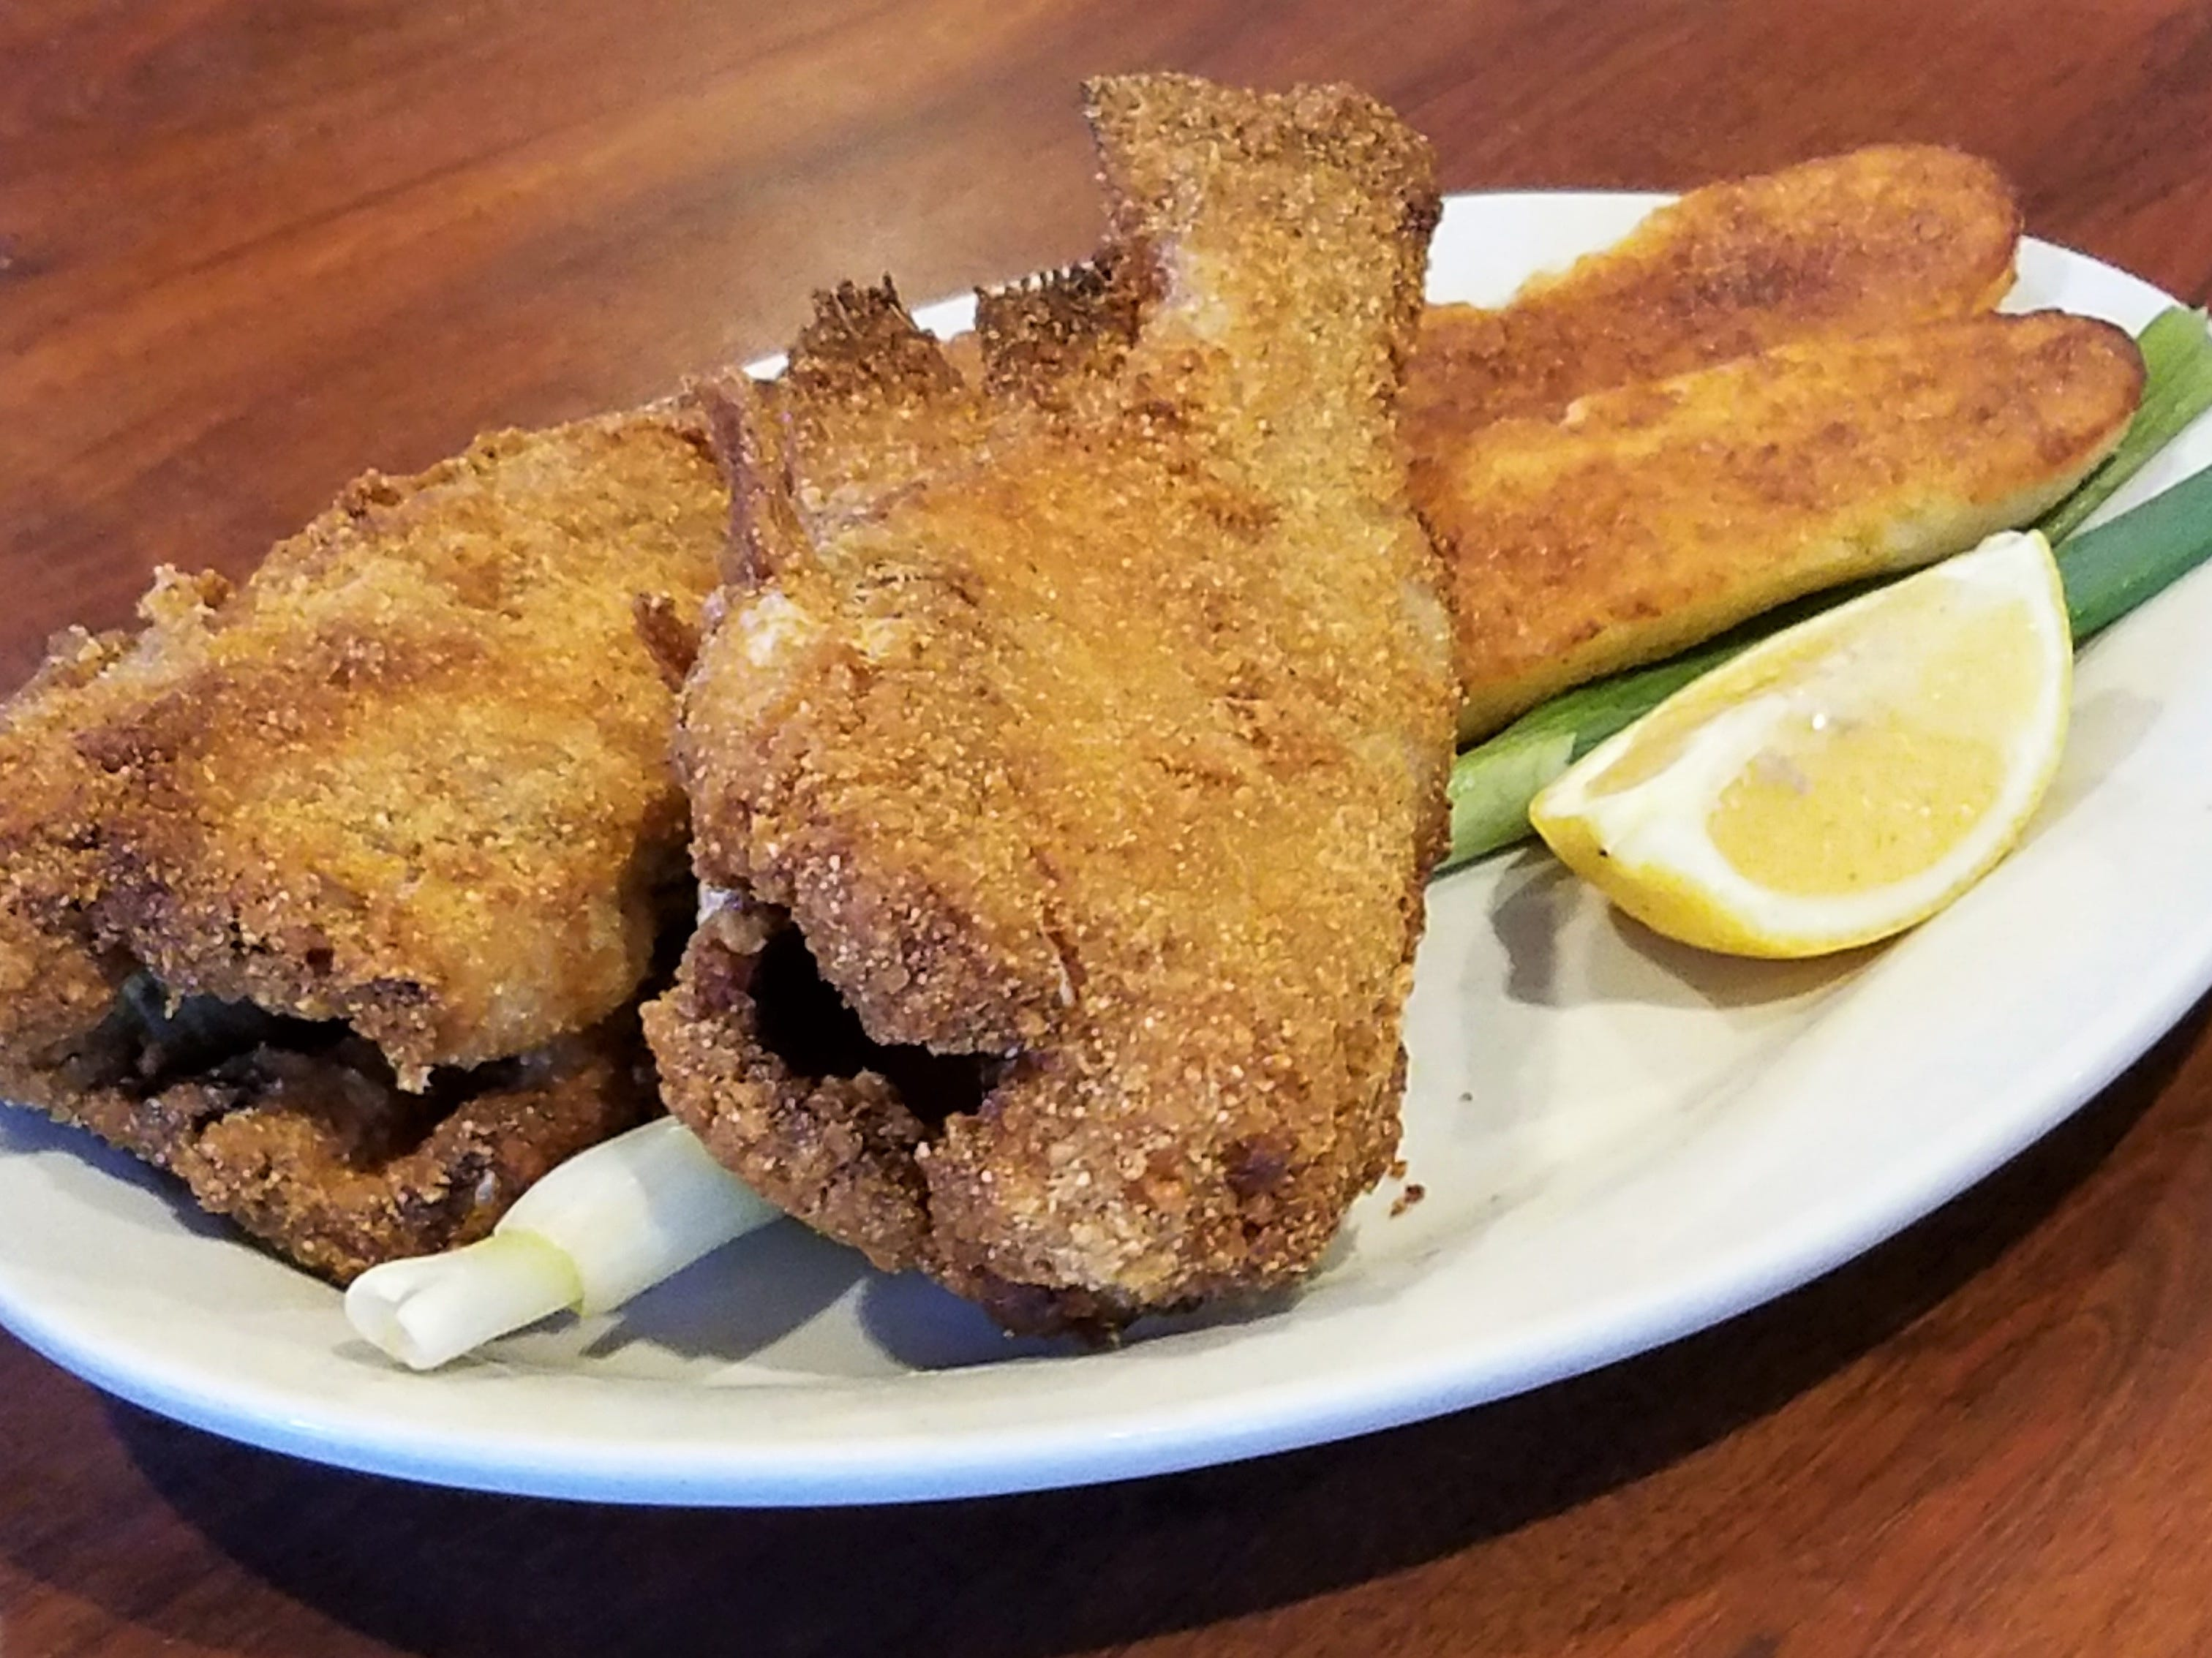 The Knob Hill's biggest claim to fame--hot catfish fiddlers.